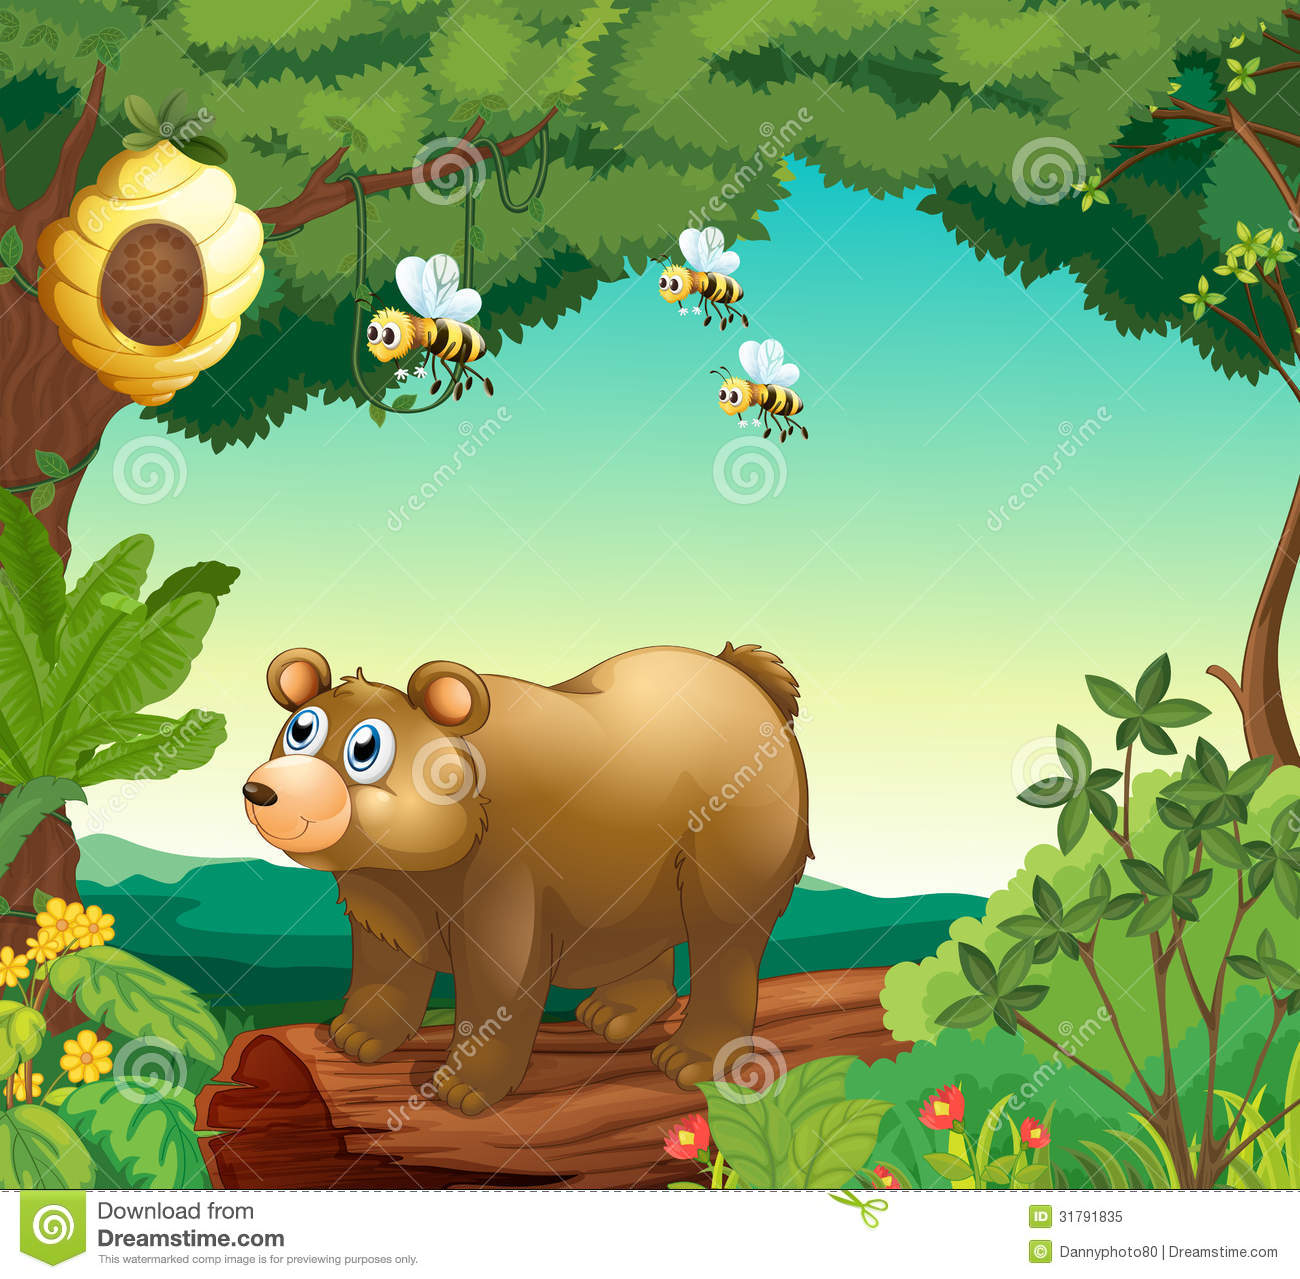 A bear with three bees inside the forest